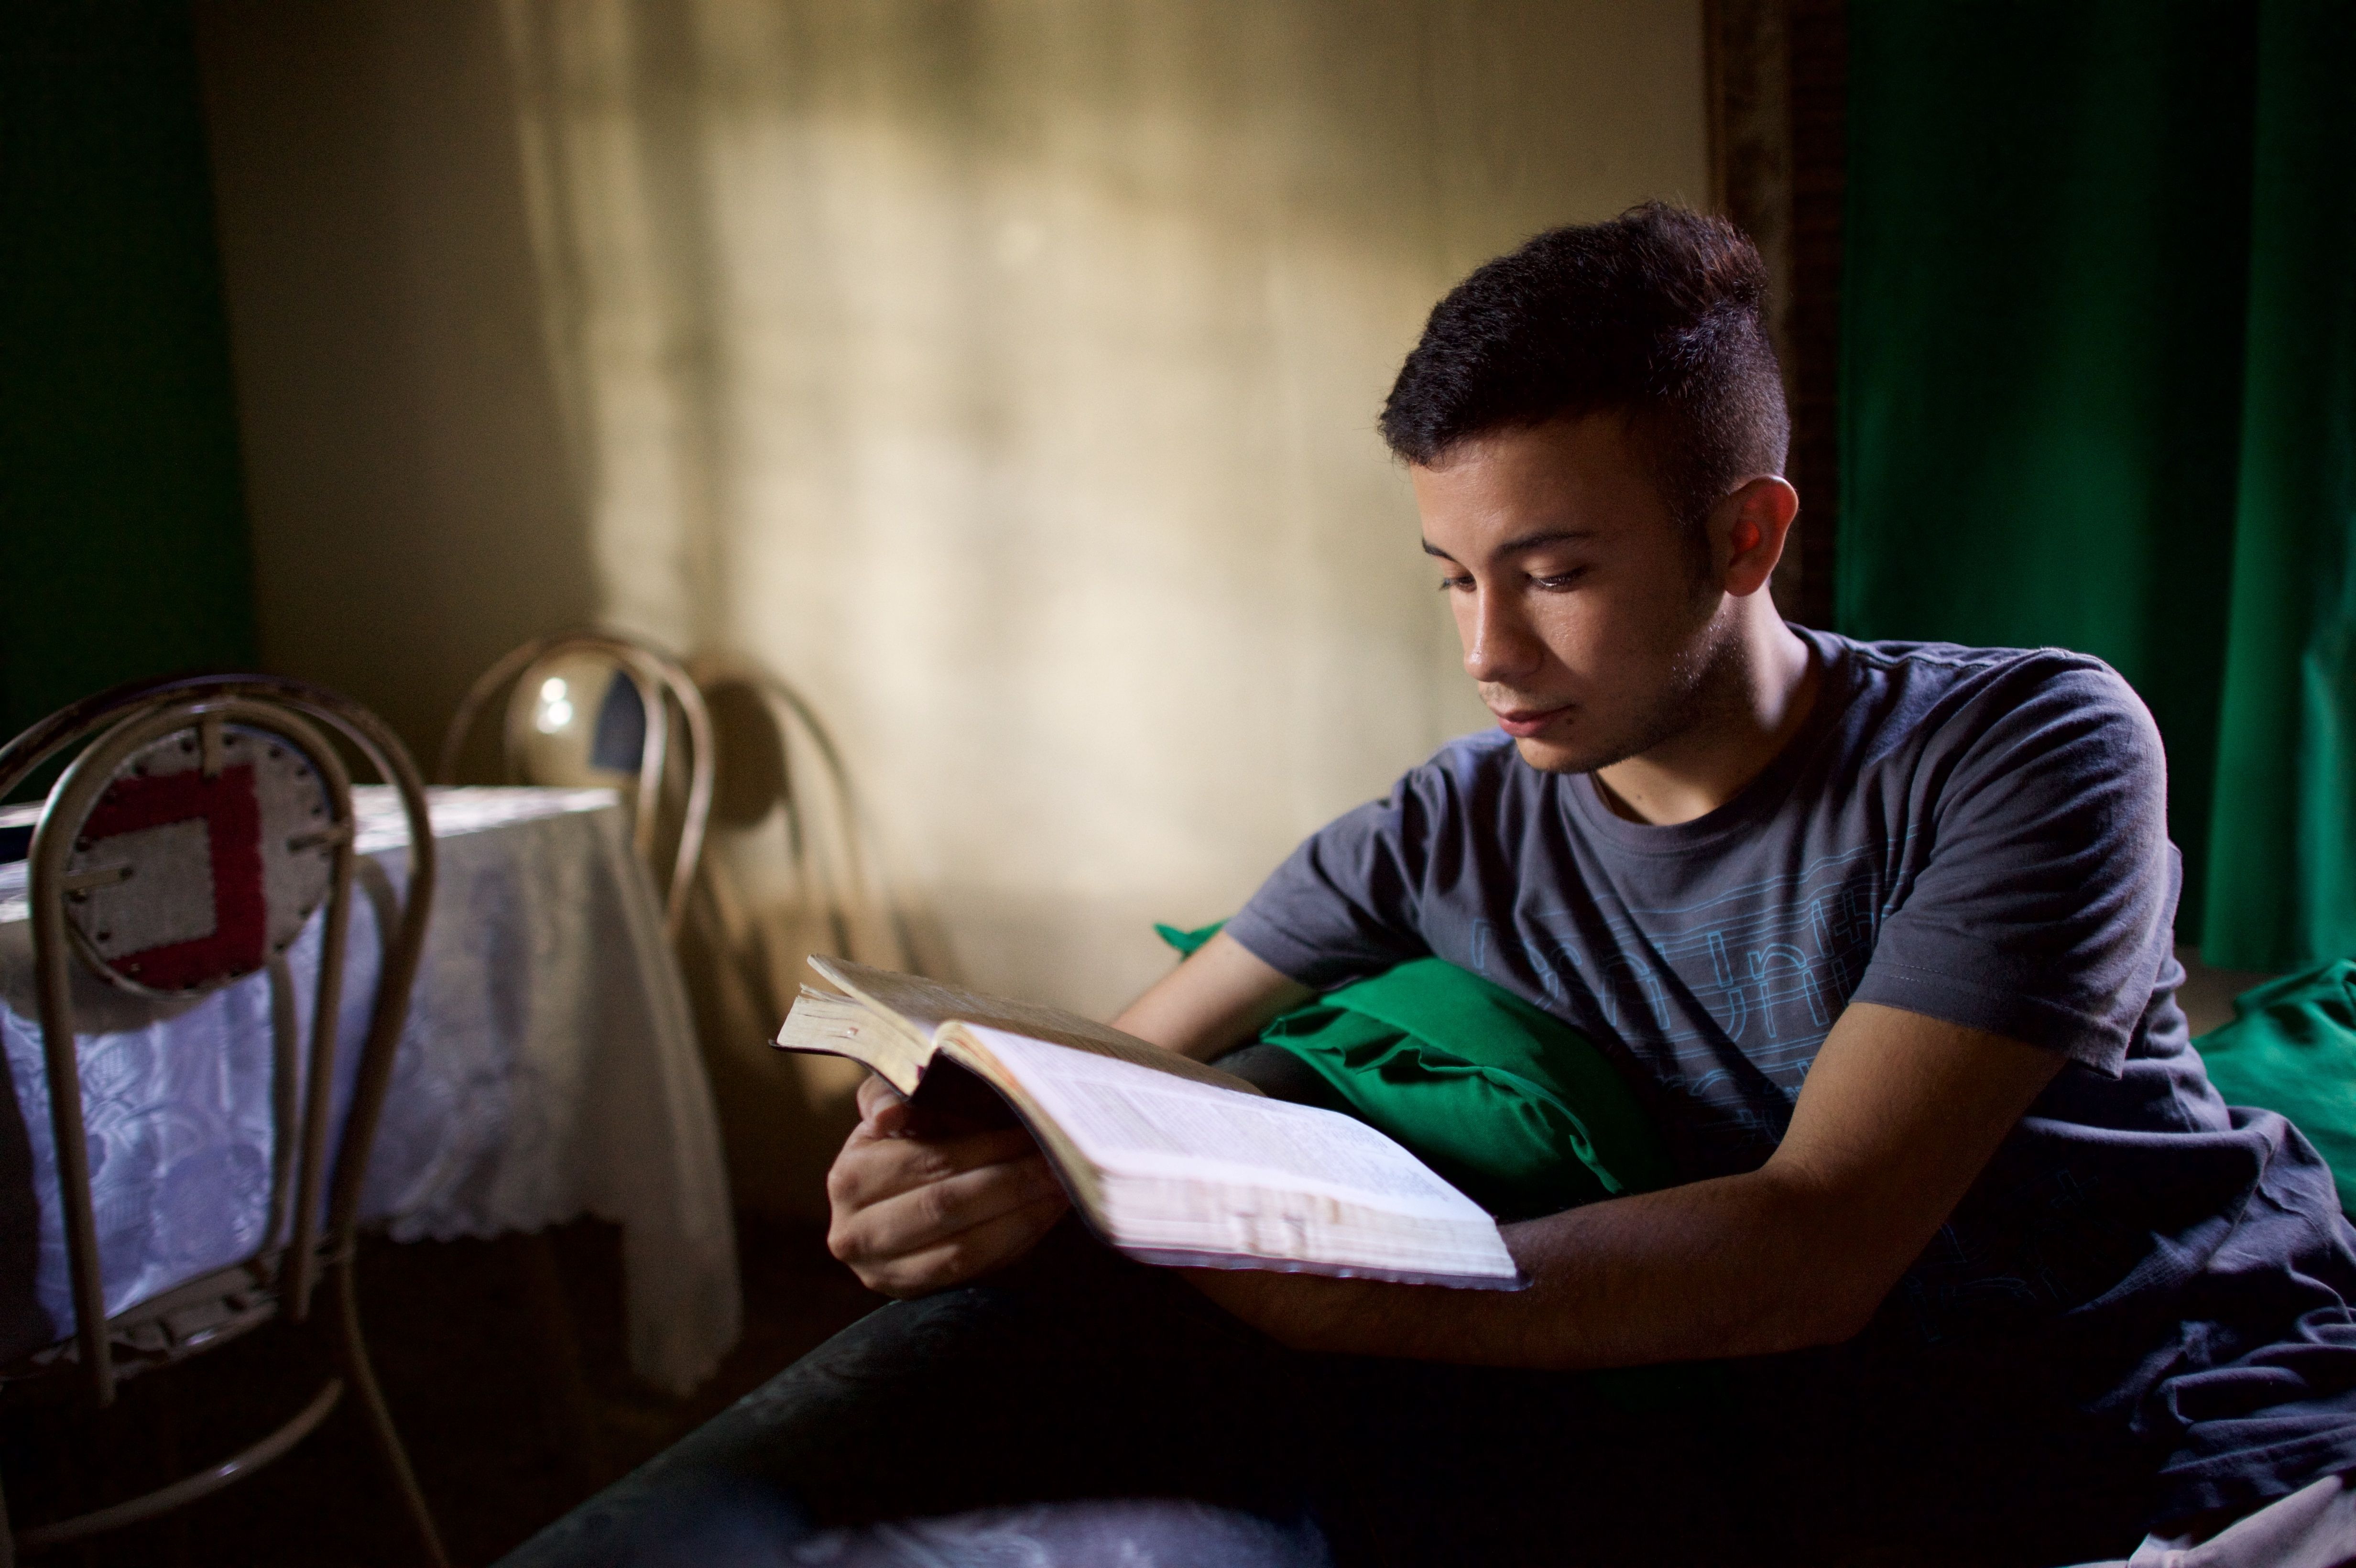 A young man studying scriptures.